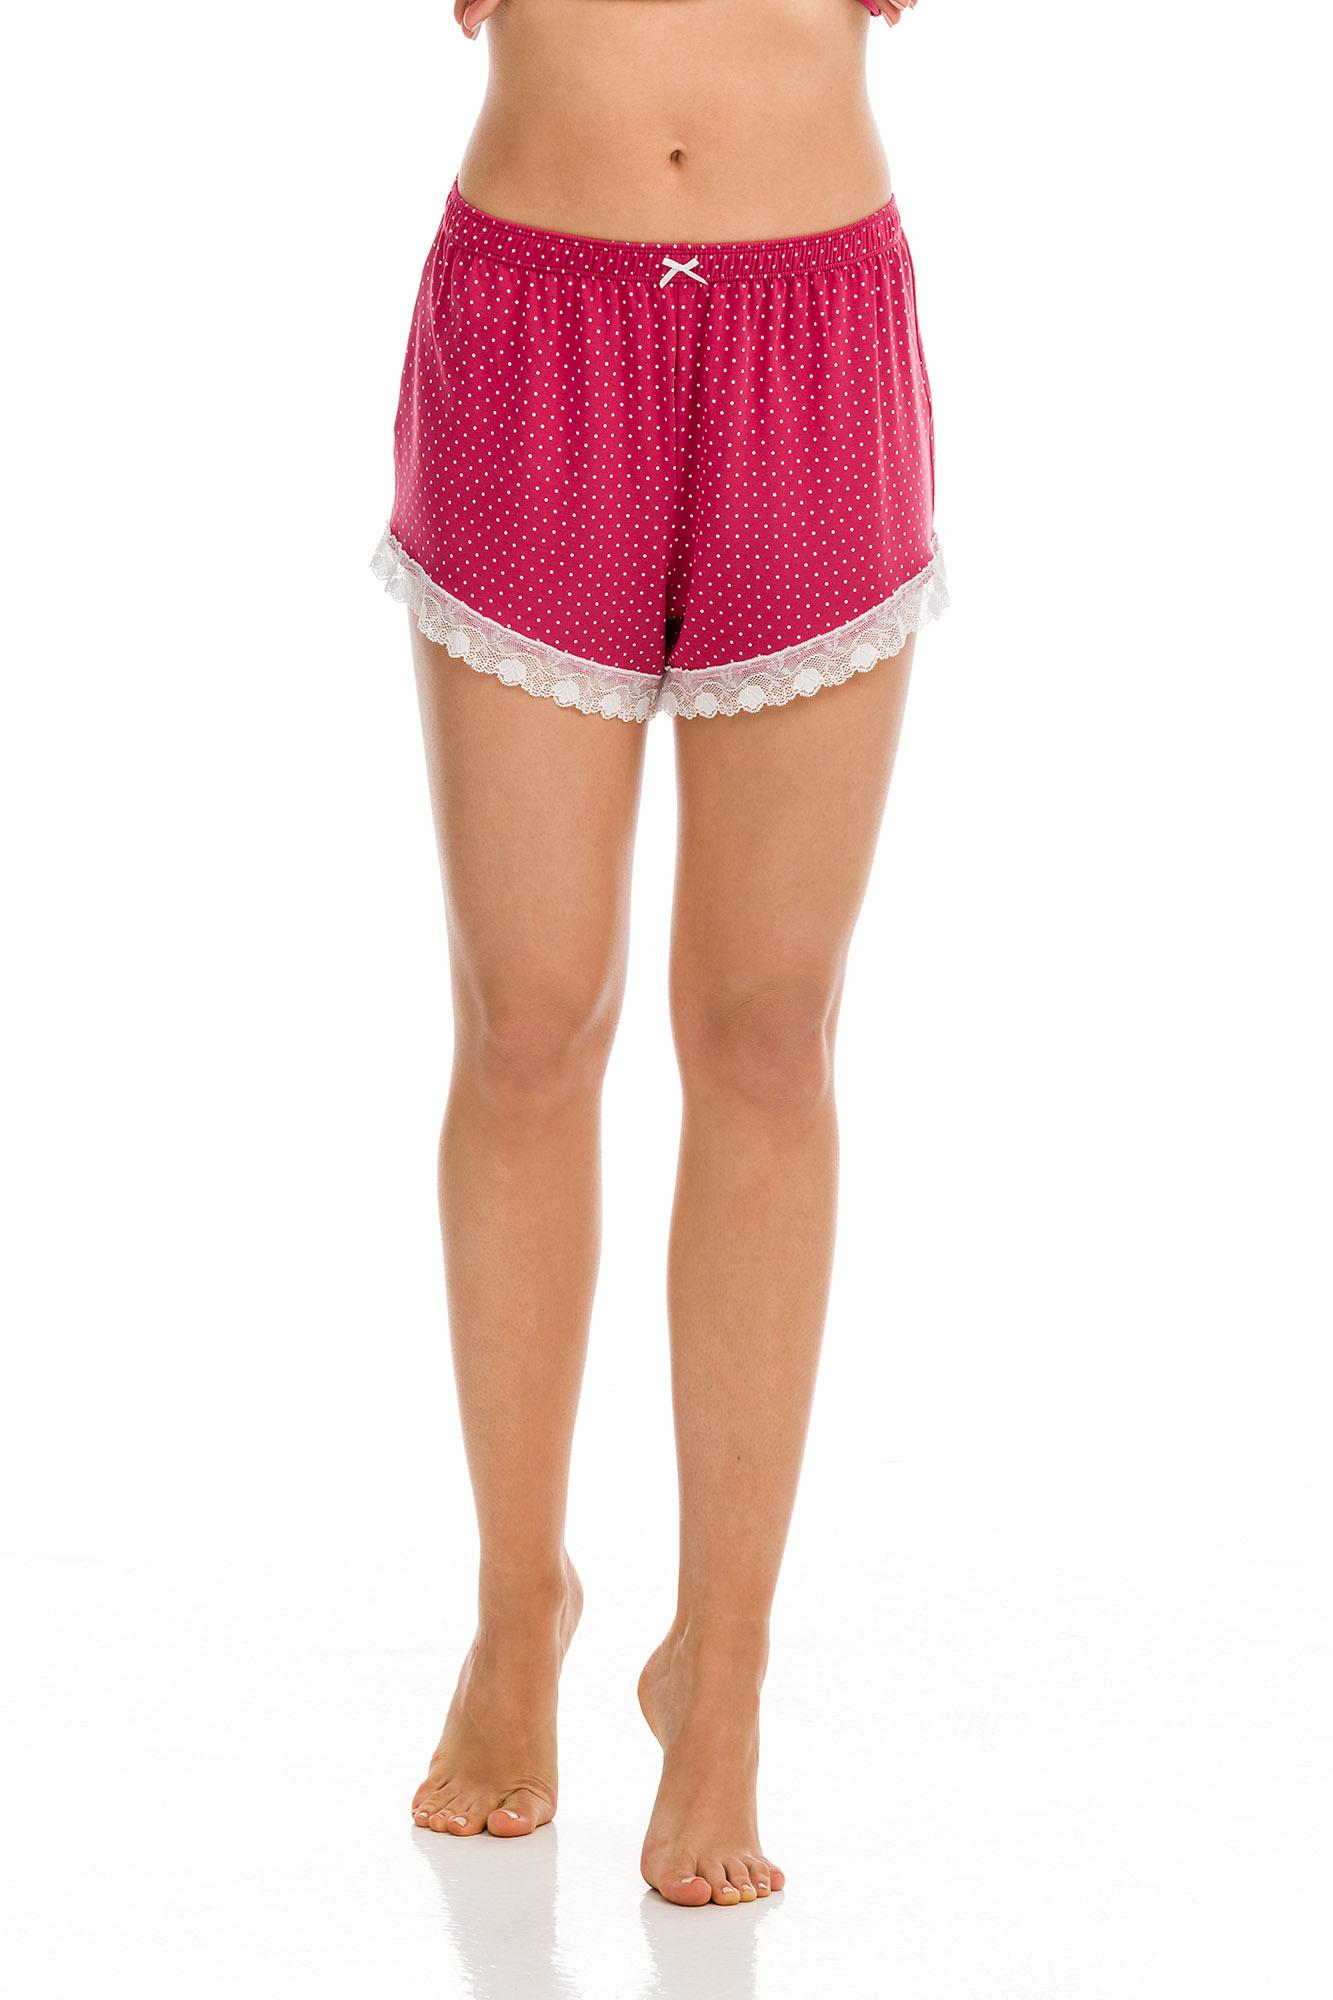 Women's Polka Dot Shorts